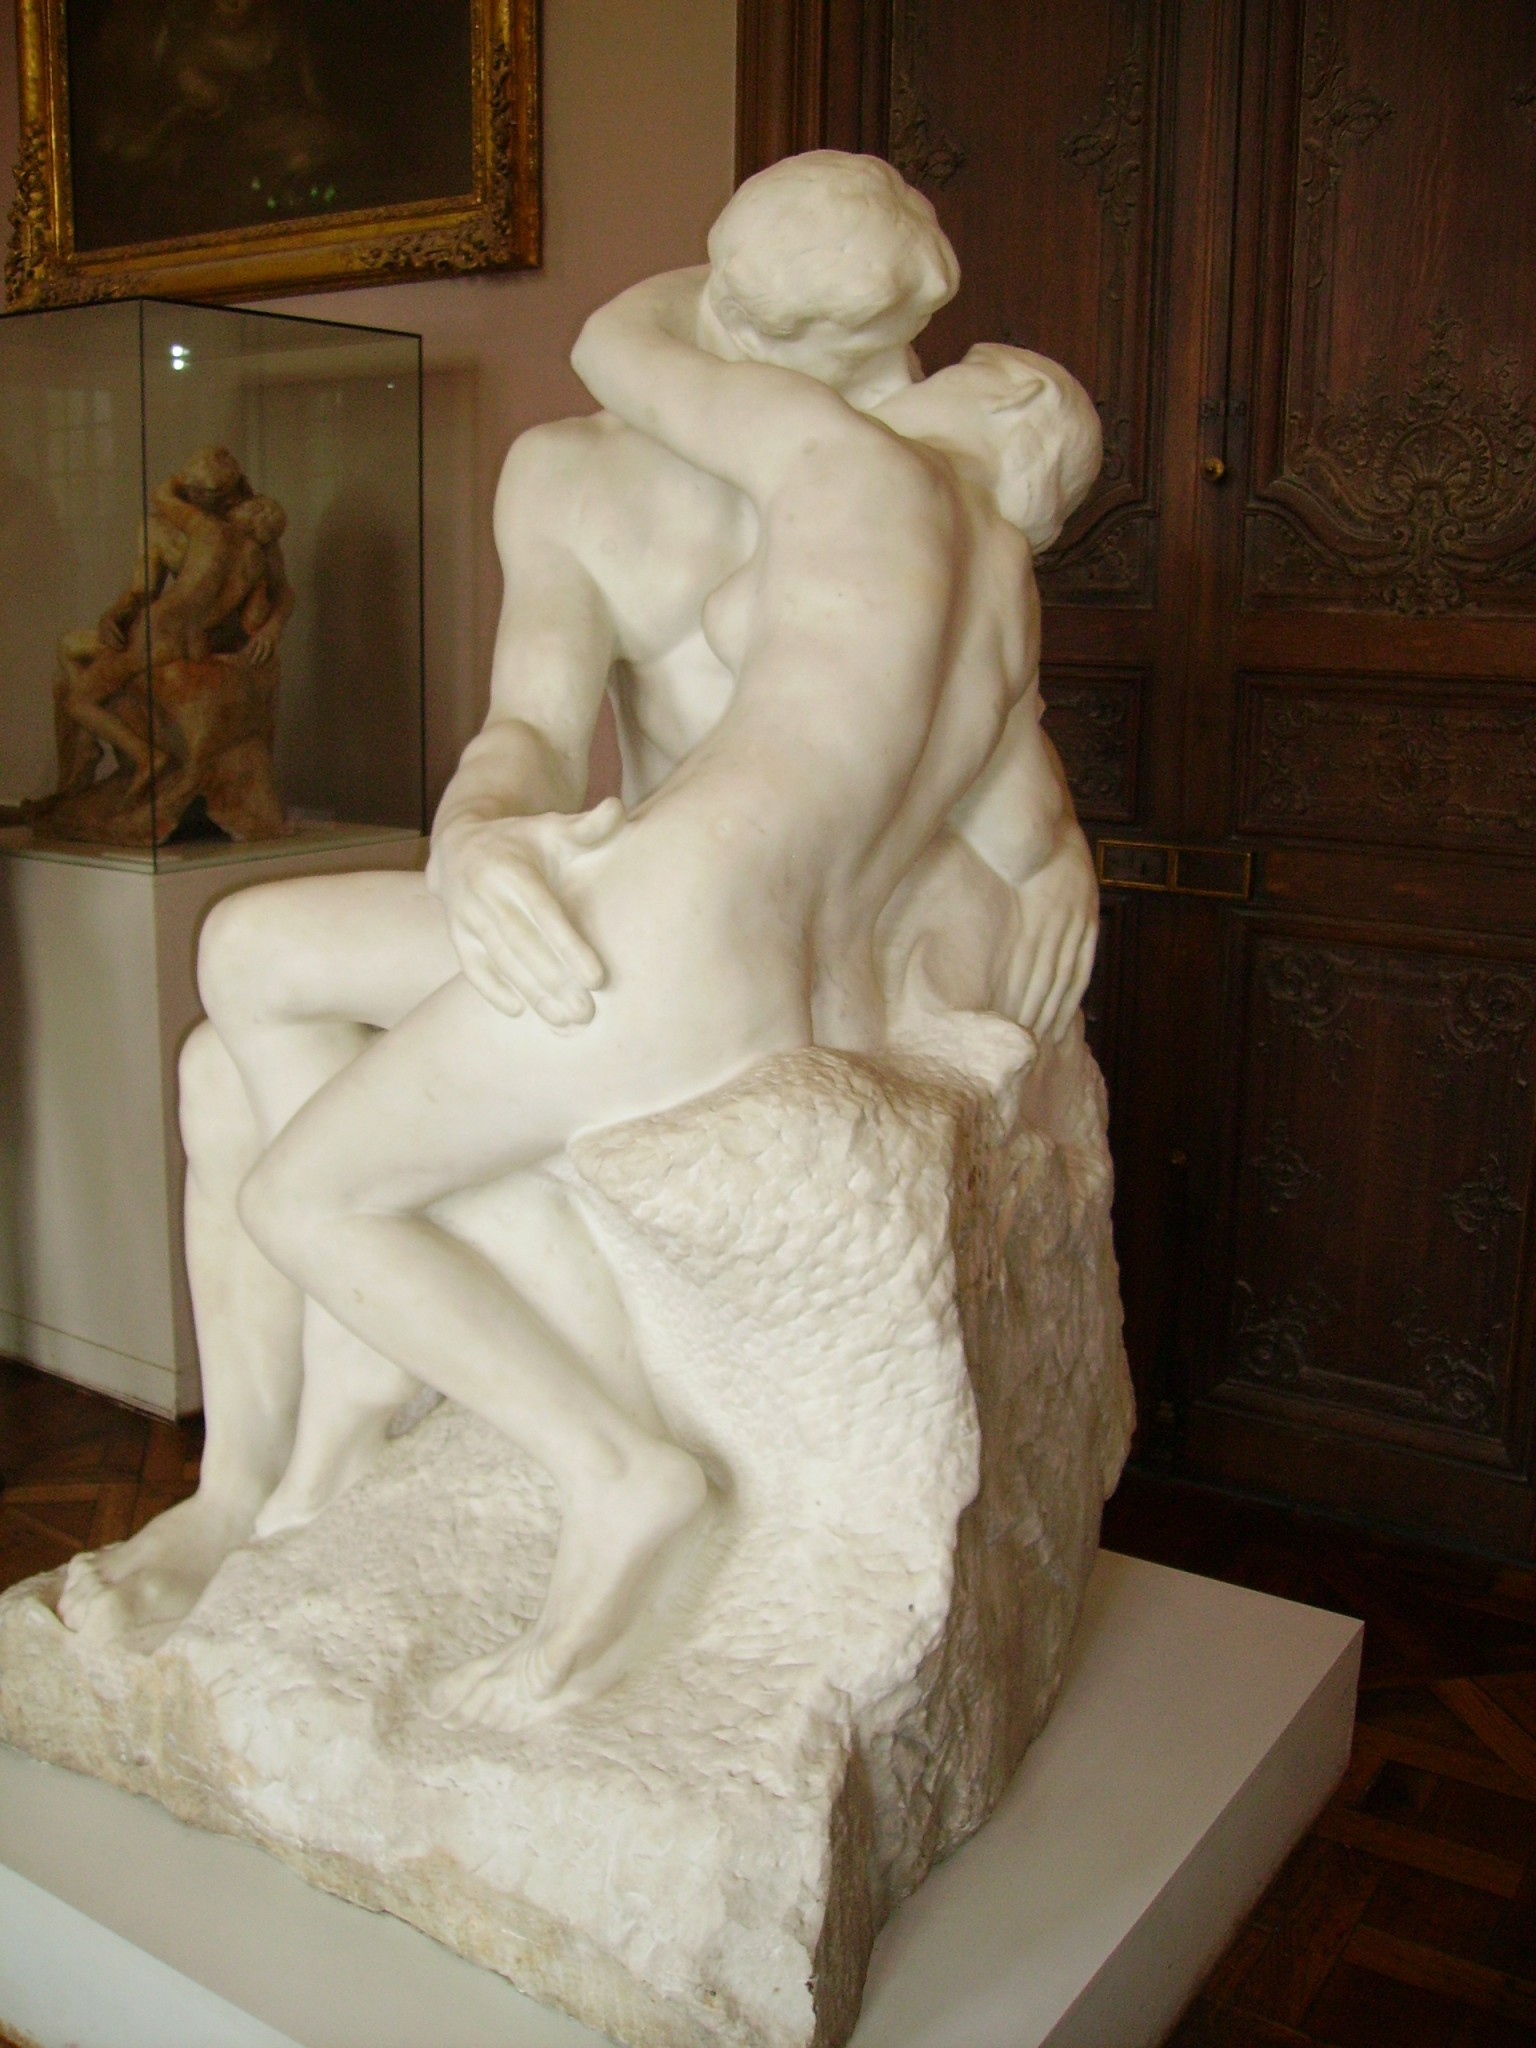 an analysis of the kiss by auguste rodin The kiss (le baiser) was also originally in the gate along with other figures of paolo and francesca da rimini rodin wanted to represent their initial joy as well as.